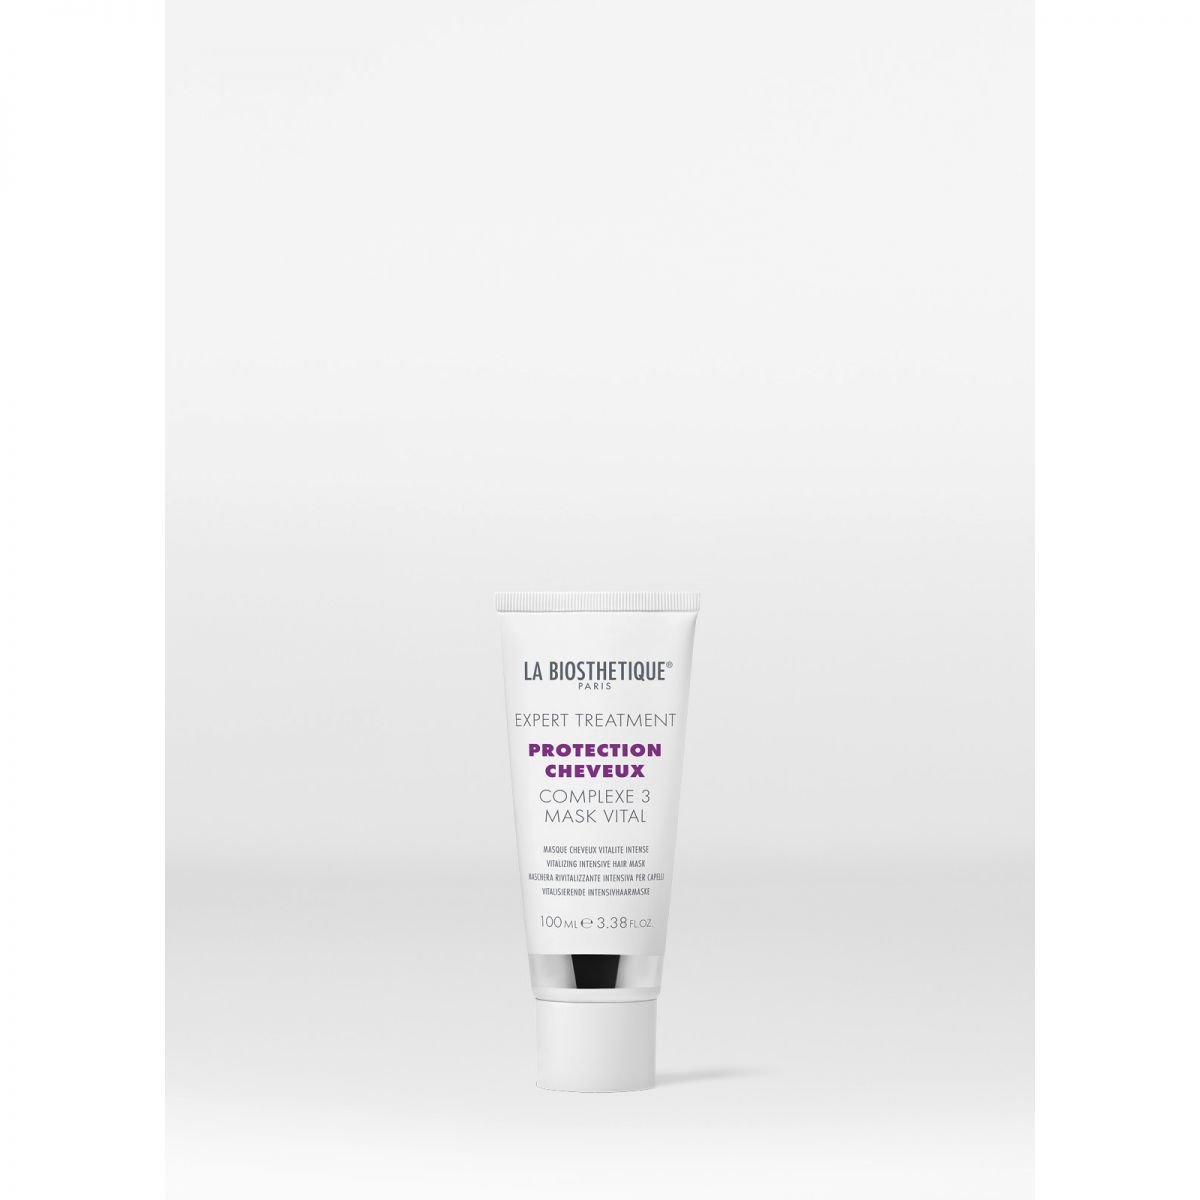 Protection Cheveux Complexe 3 Mask Vital